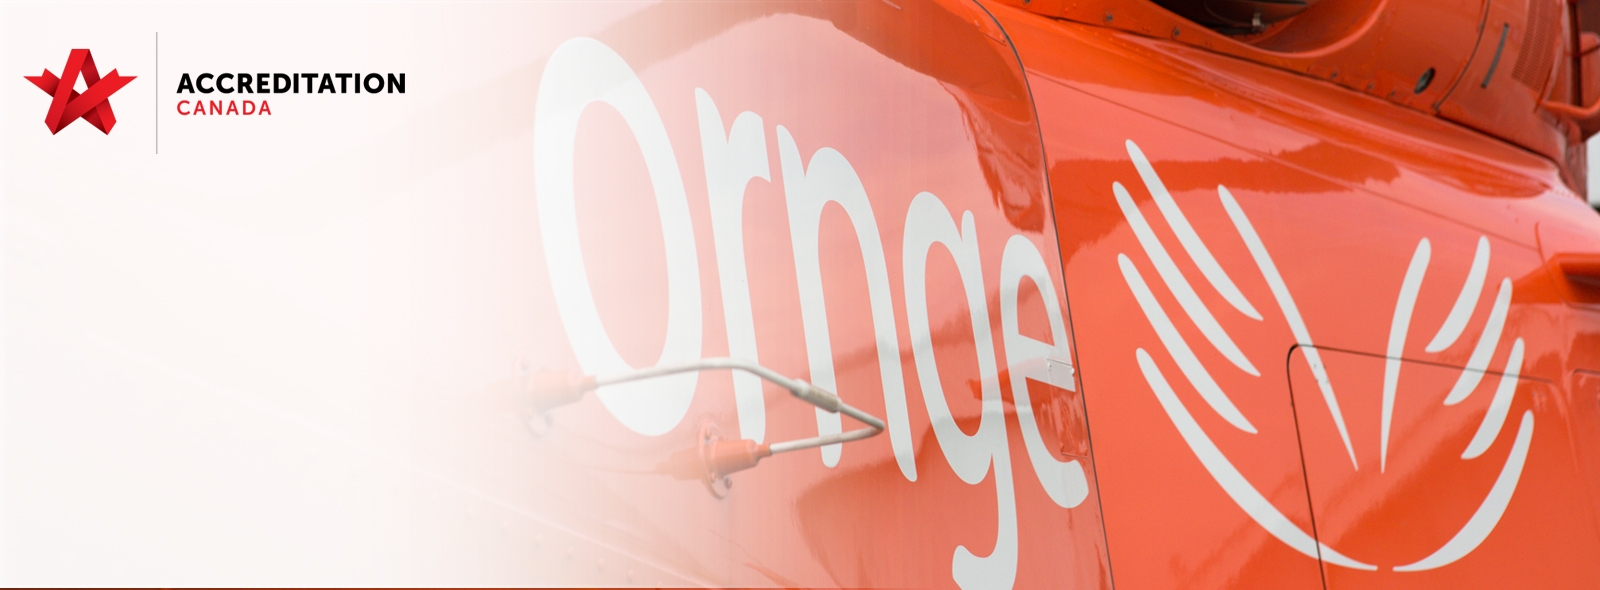 Accreditation Canada logo with Ornge Helicopter